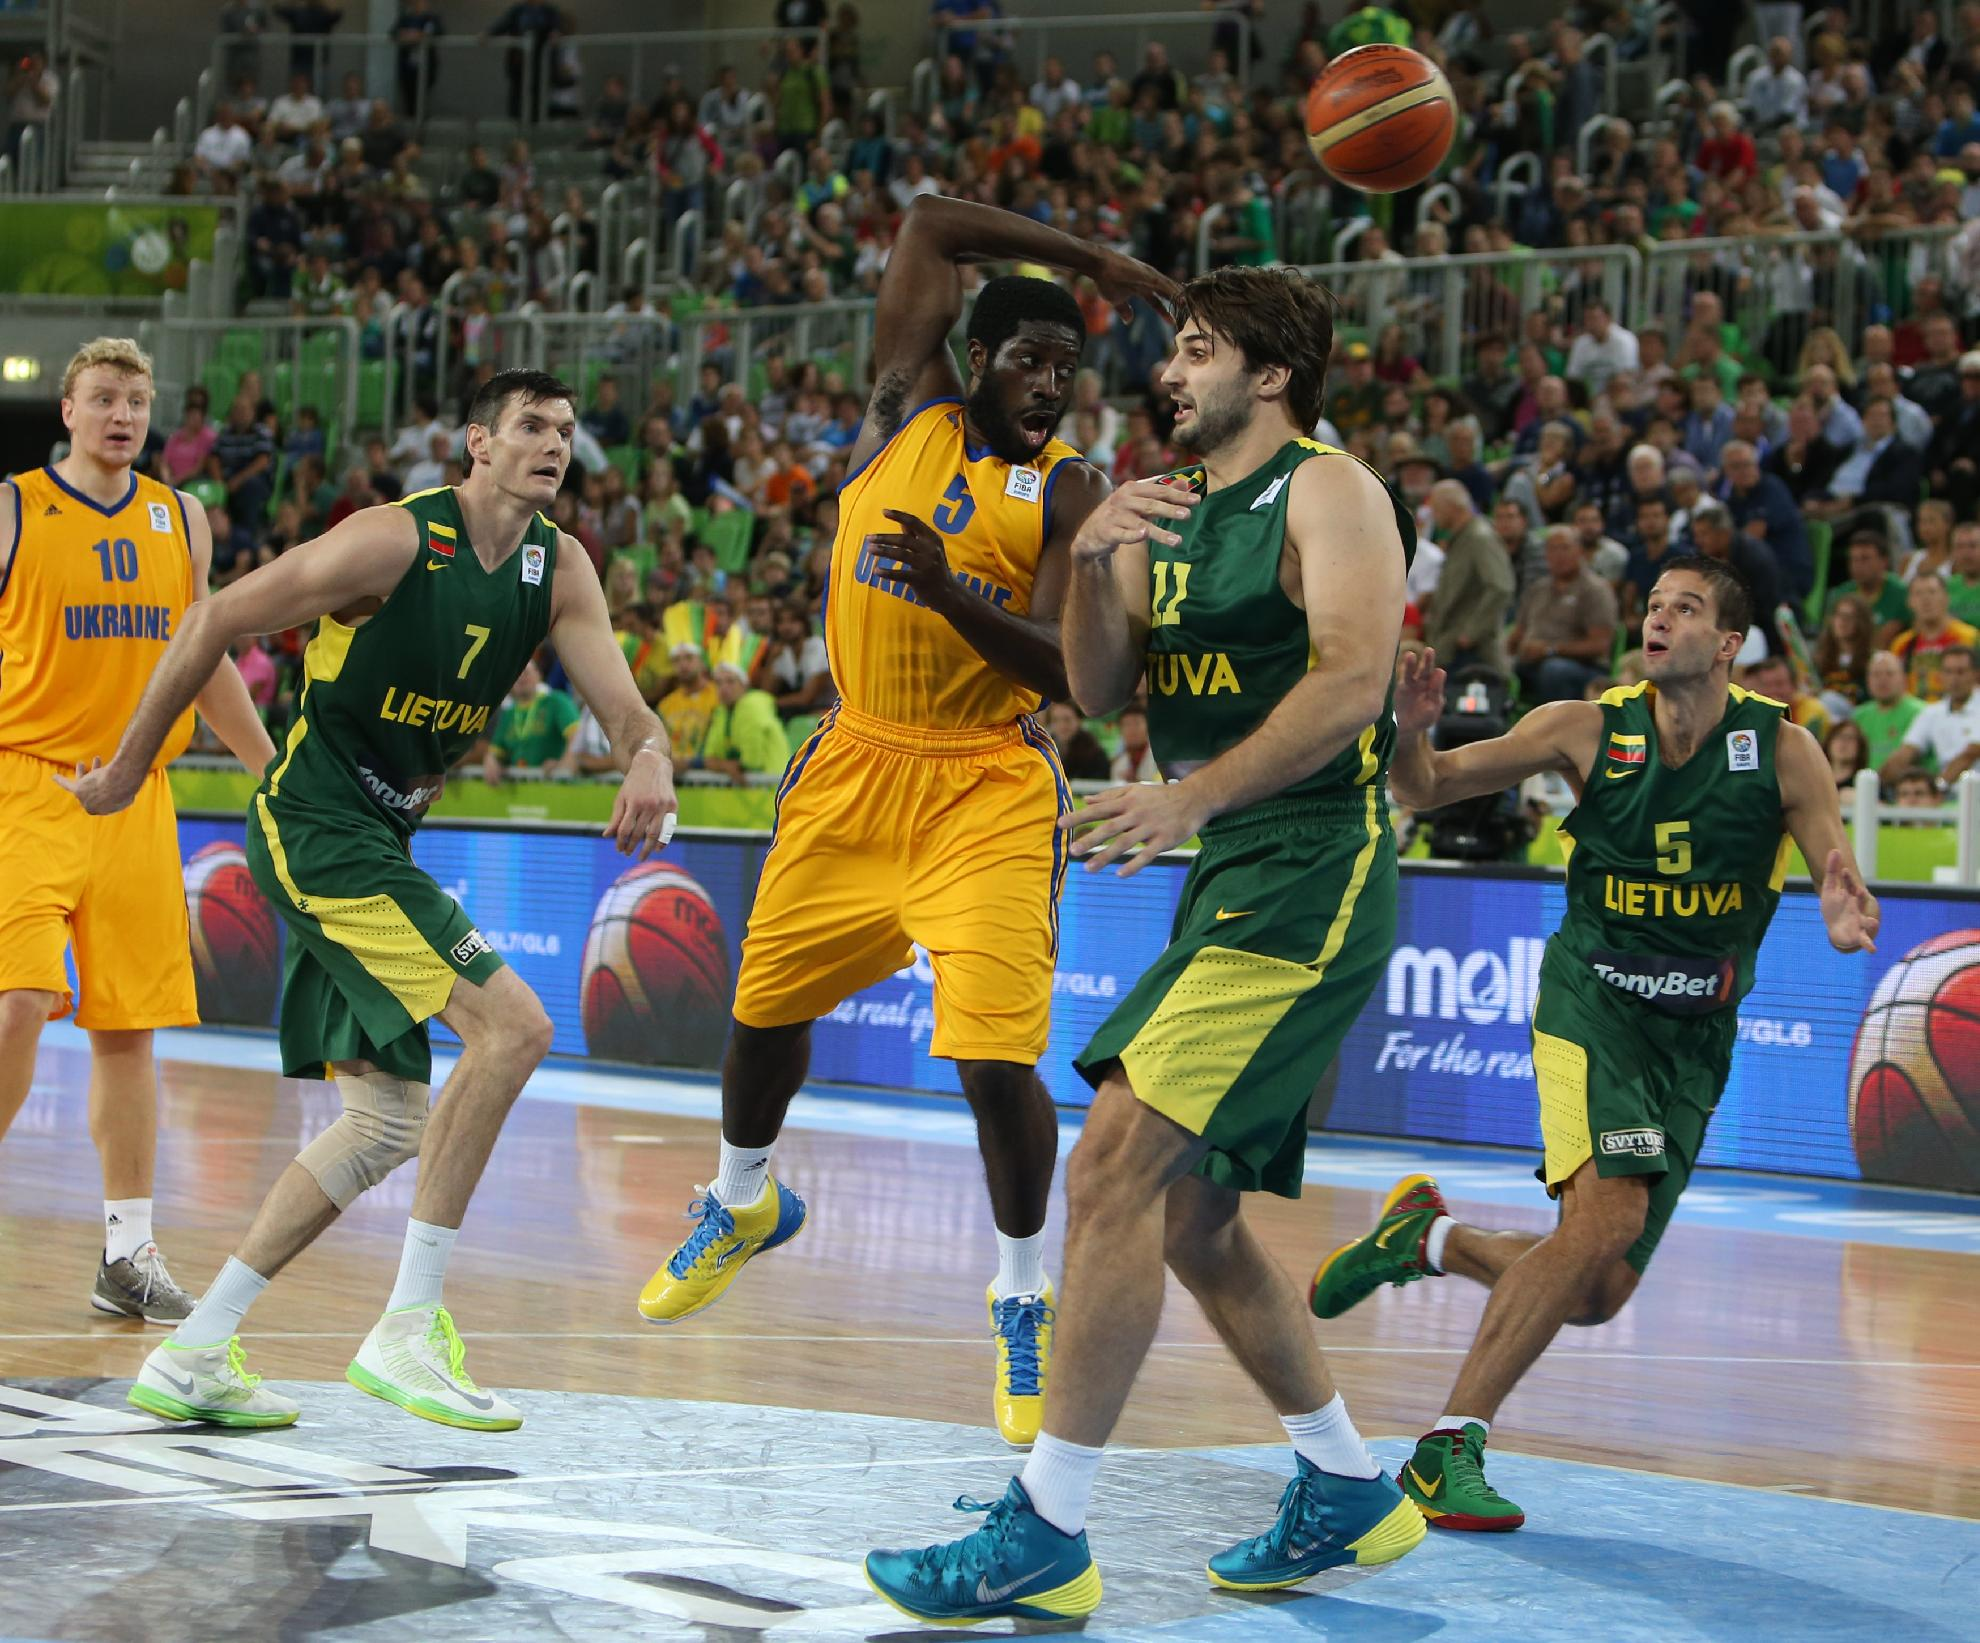 Ukraine's Eugene Jeter, center, passes the ball as Lithuania's Linas Kleiza, right, looks on during their EuroBasket European Basketball Championship Group E match at the Stozice Arena, in Ljubljana, Slovenia, Sunday, Sept. 15, 2013